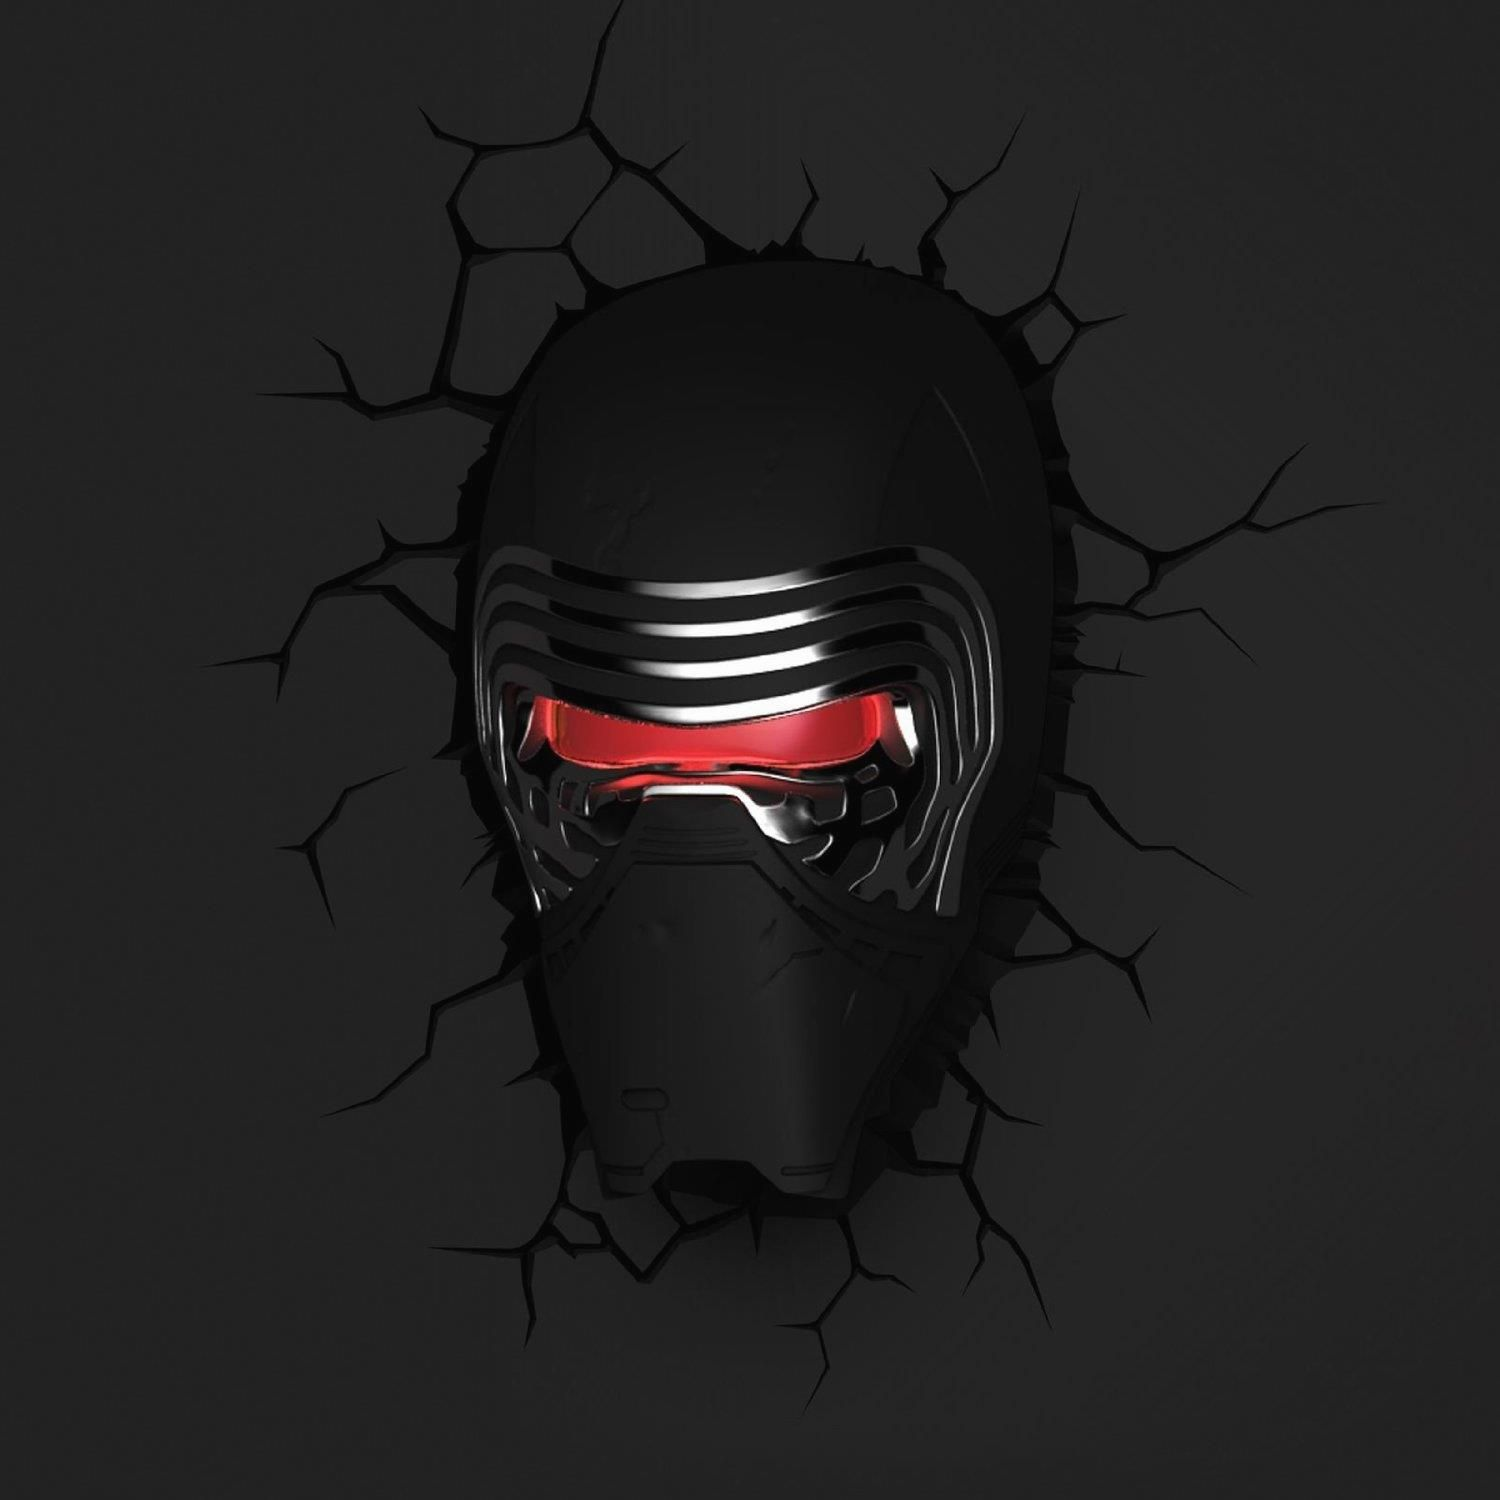 Awesome Star Wars Lights Deal Of The Day Http Bit Ly 2apsgsq Star Wars Awesome Star Wars Light Star Wars Kylo Ren